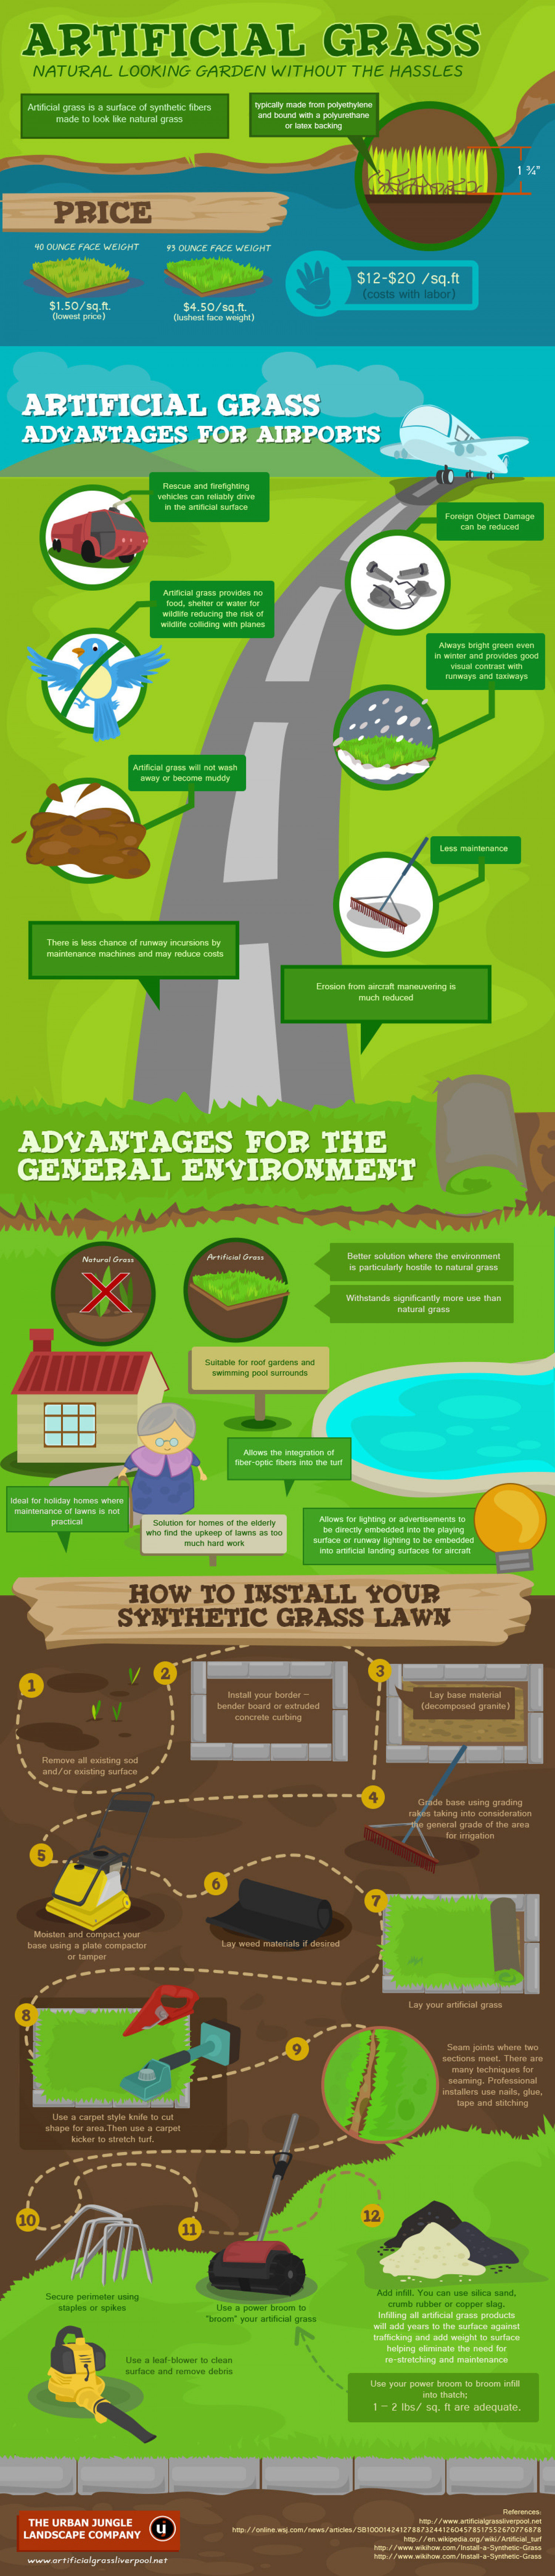 Artificial Grass - A Natural Looking Garden without the Hassles Infographic